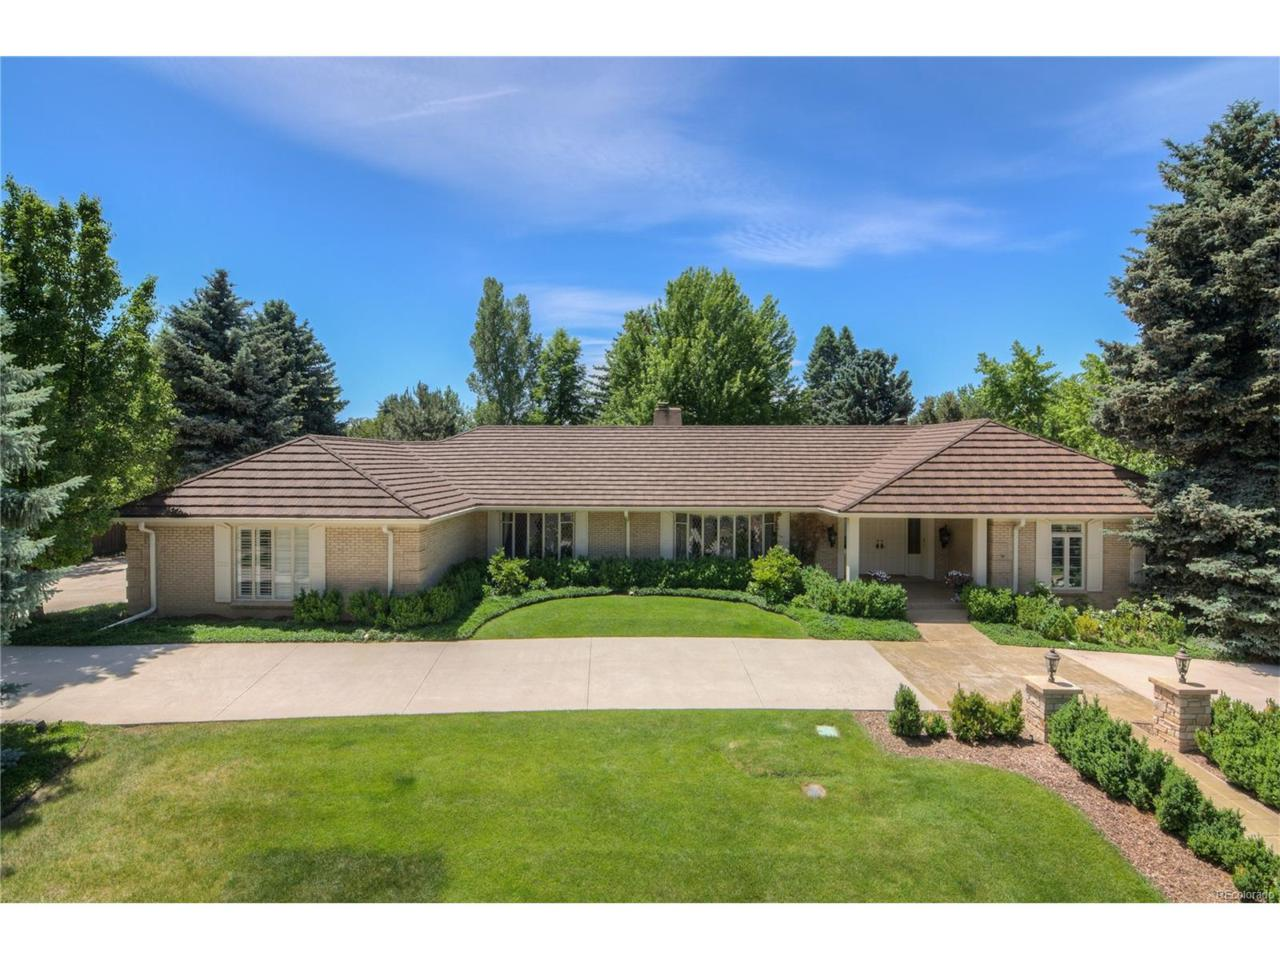 5010 Nassau Circle, Englewood, CO 80113 (MLS #6402762) :: 8z Real Estate